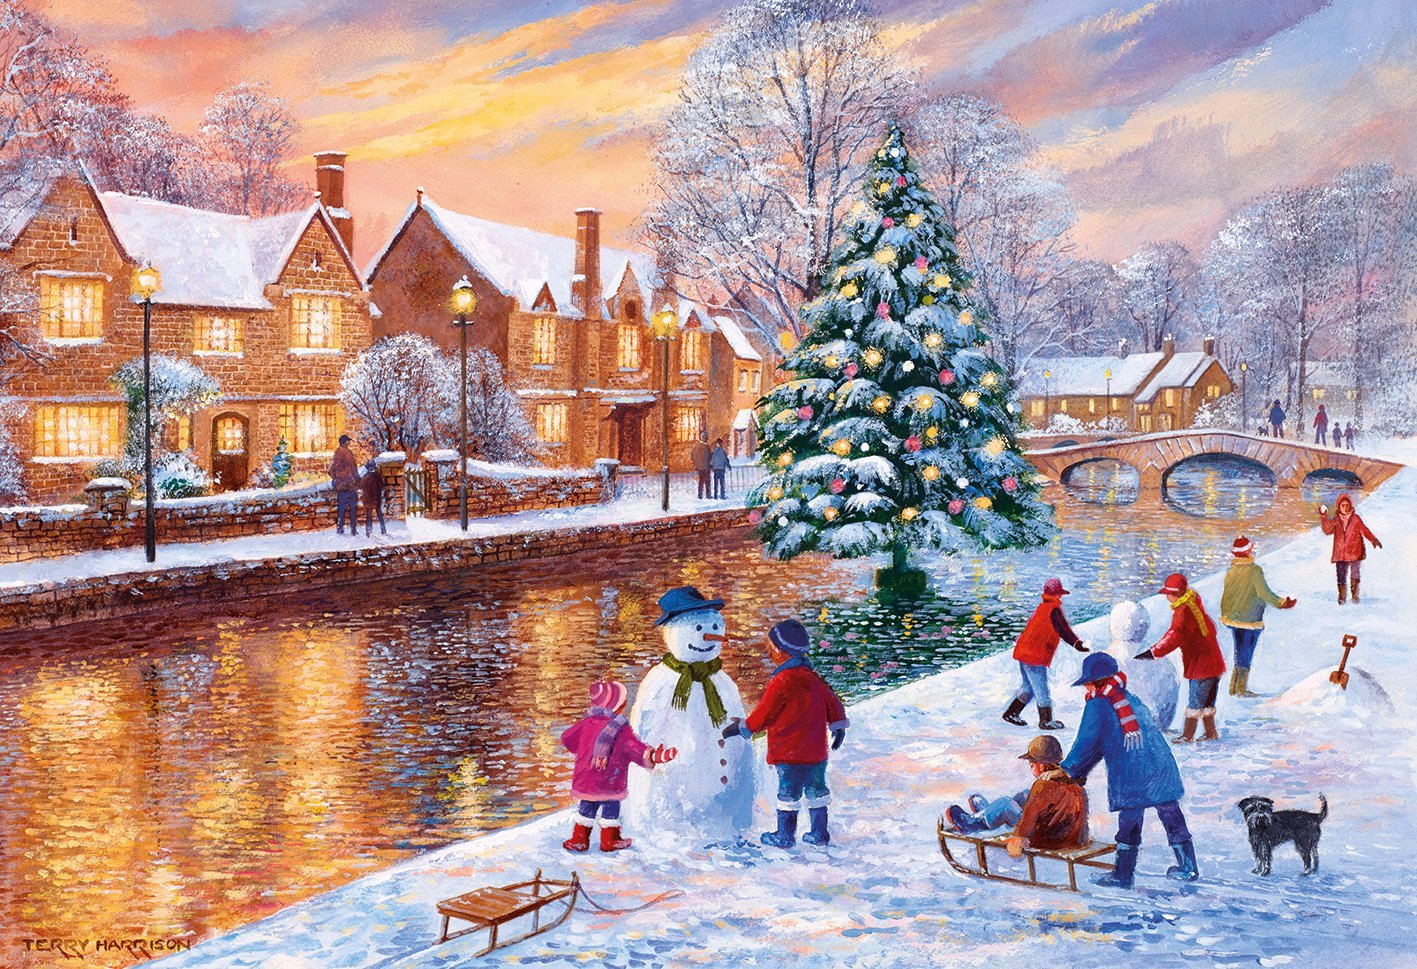 gibsons-terry-harrison-bourton-at-christmas-500-teile-puzzle-gibsons-g3088